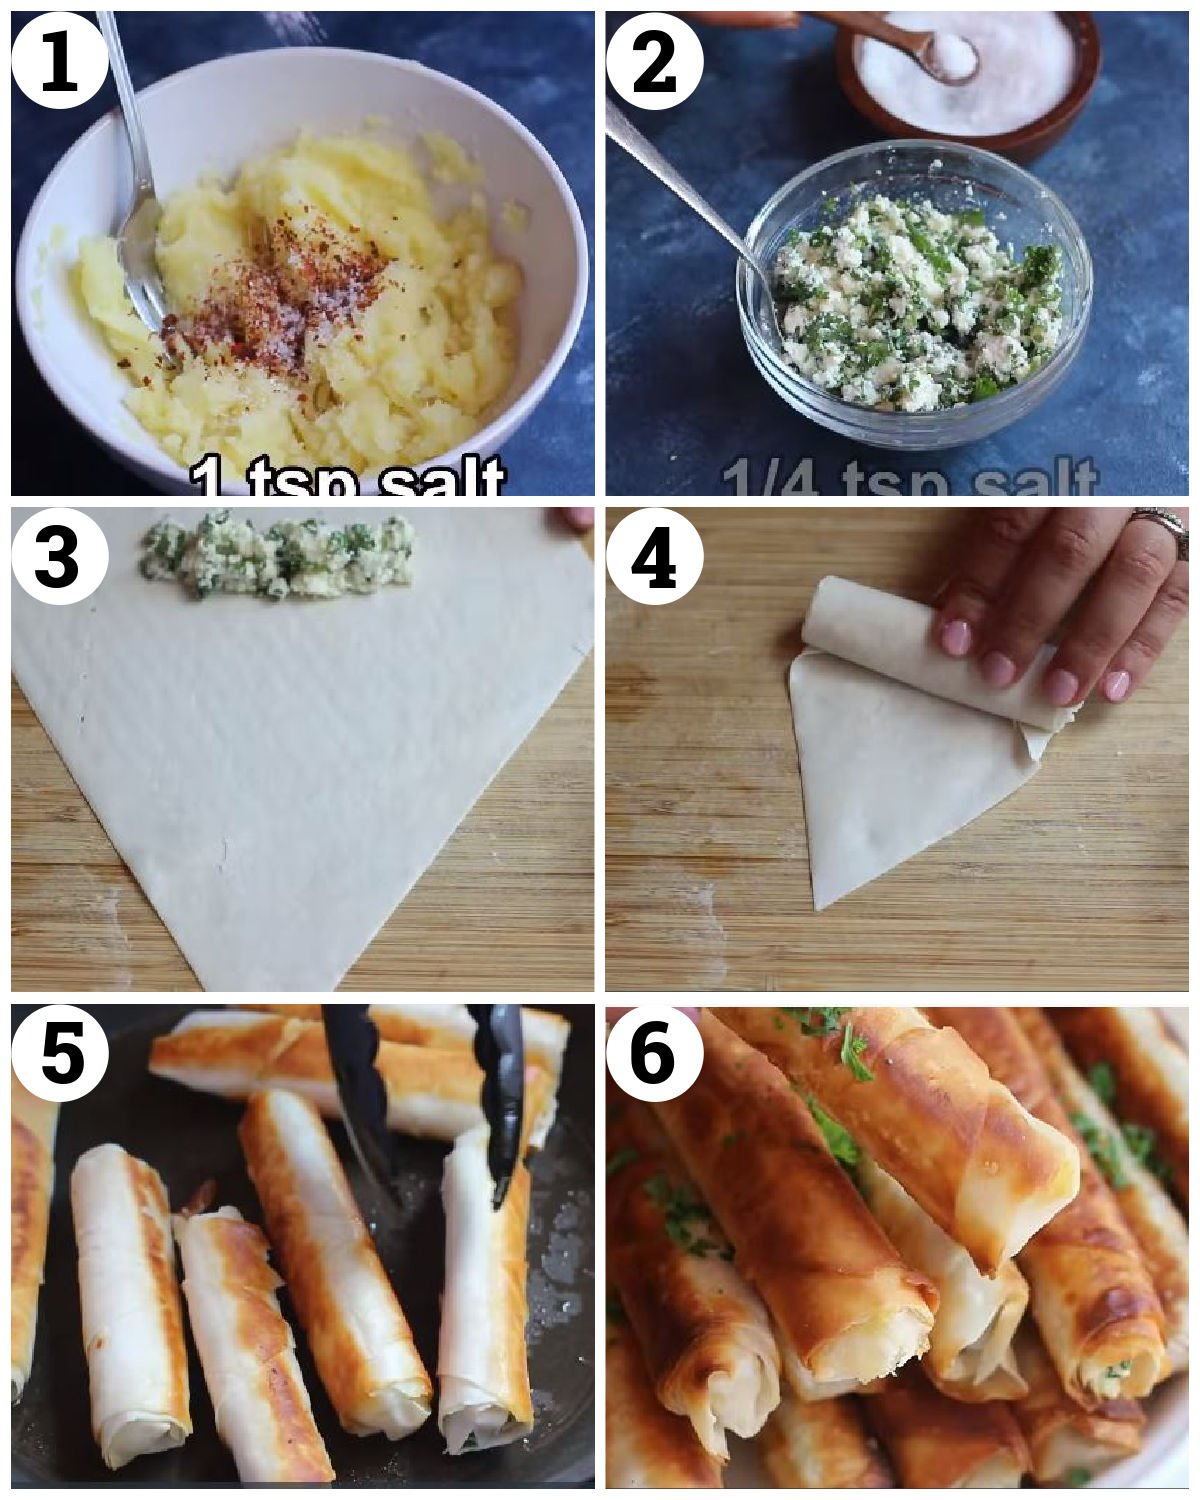 make the filling, fill the borek sheets and roll. Fry and serve.